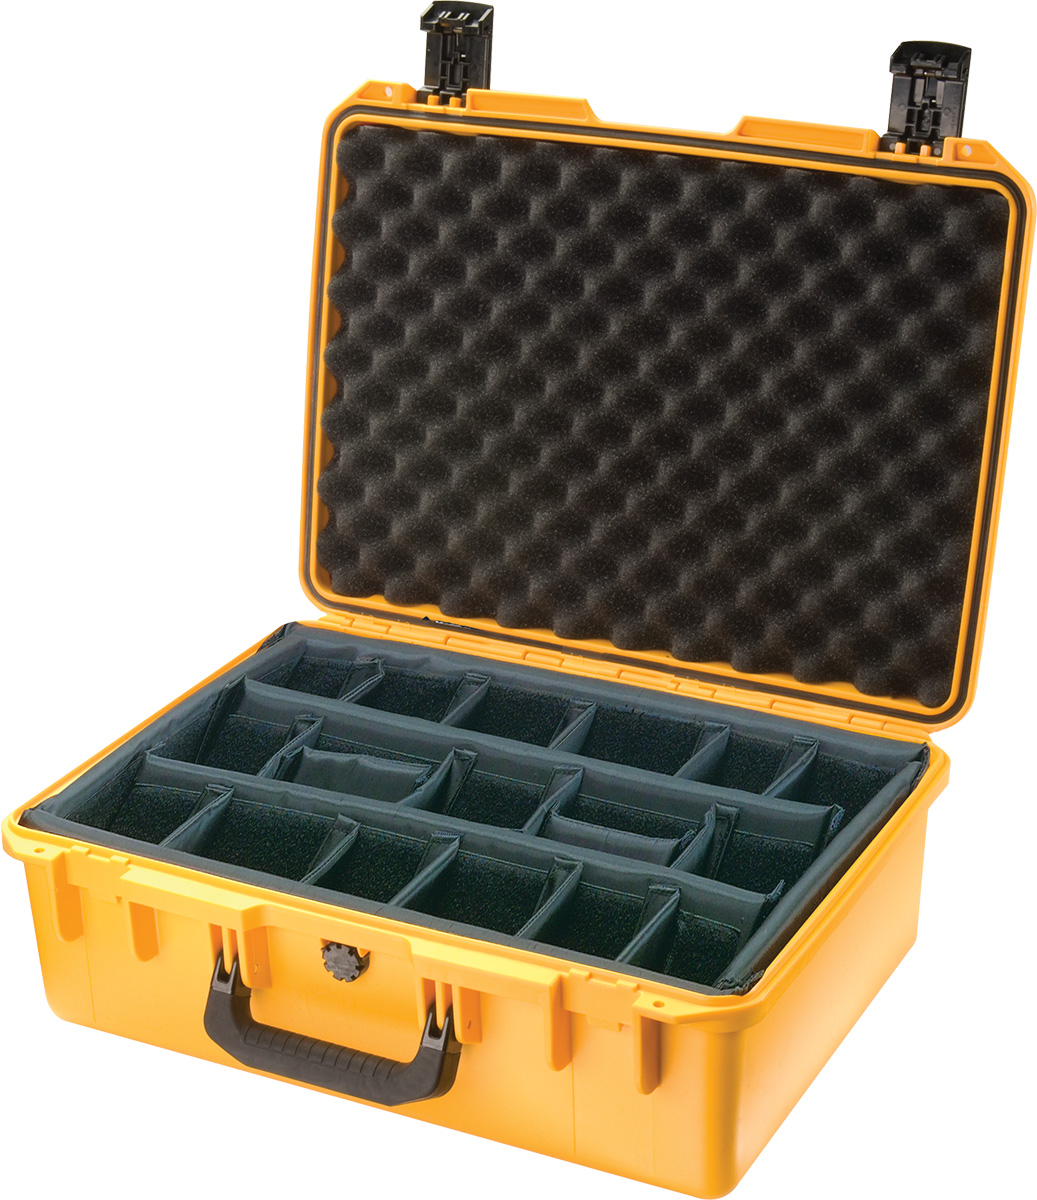 pelican im2600 storm carry on travel case